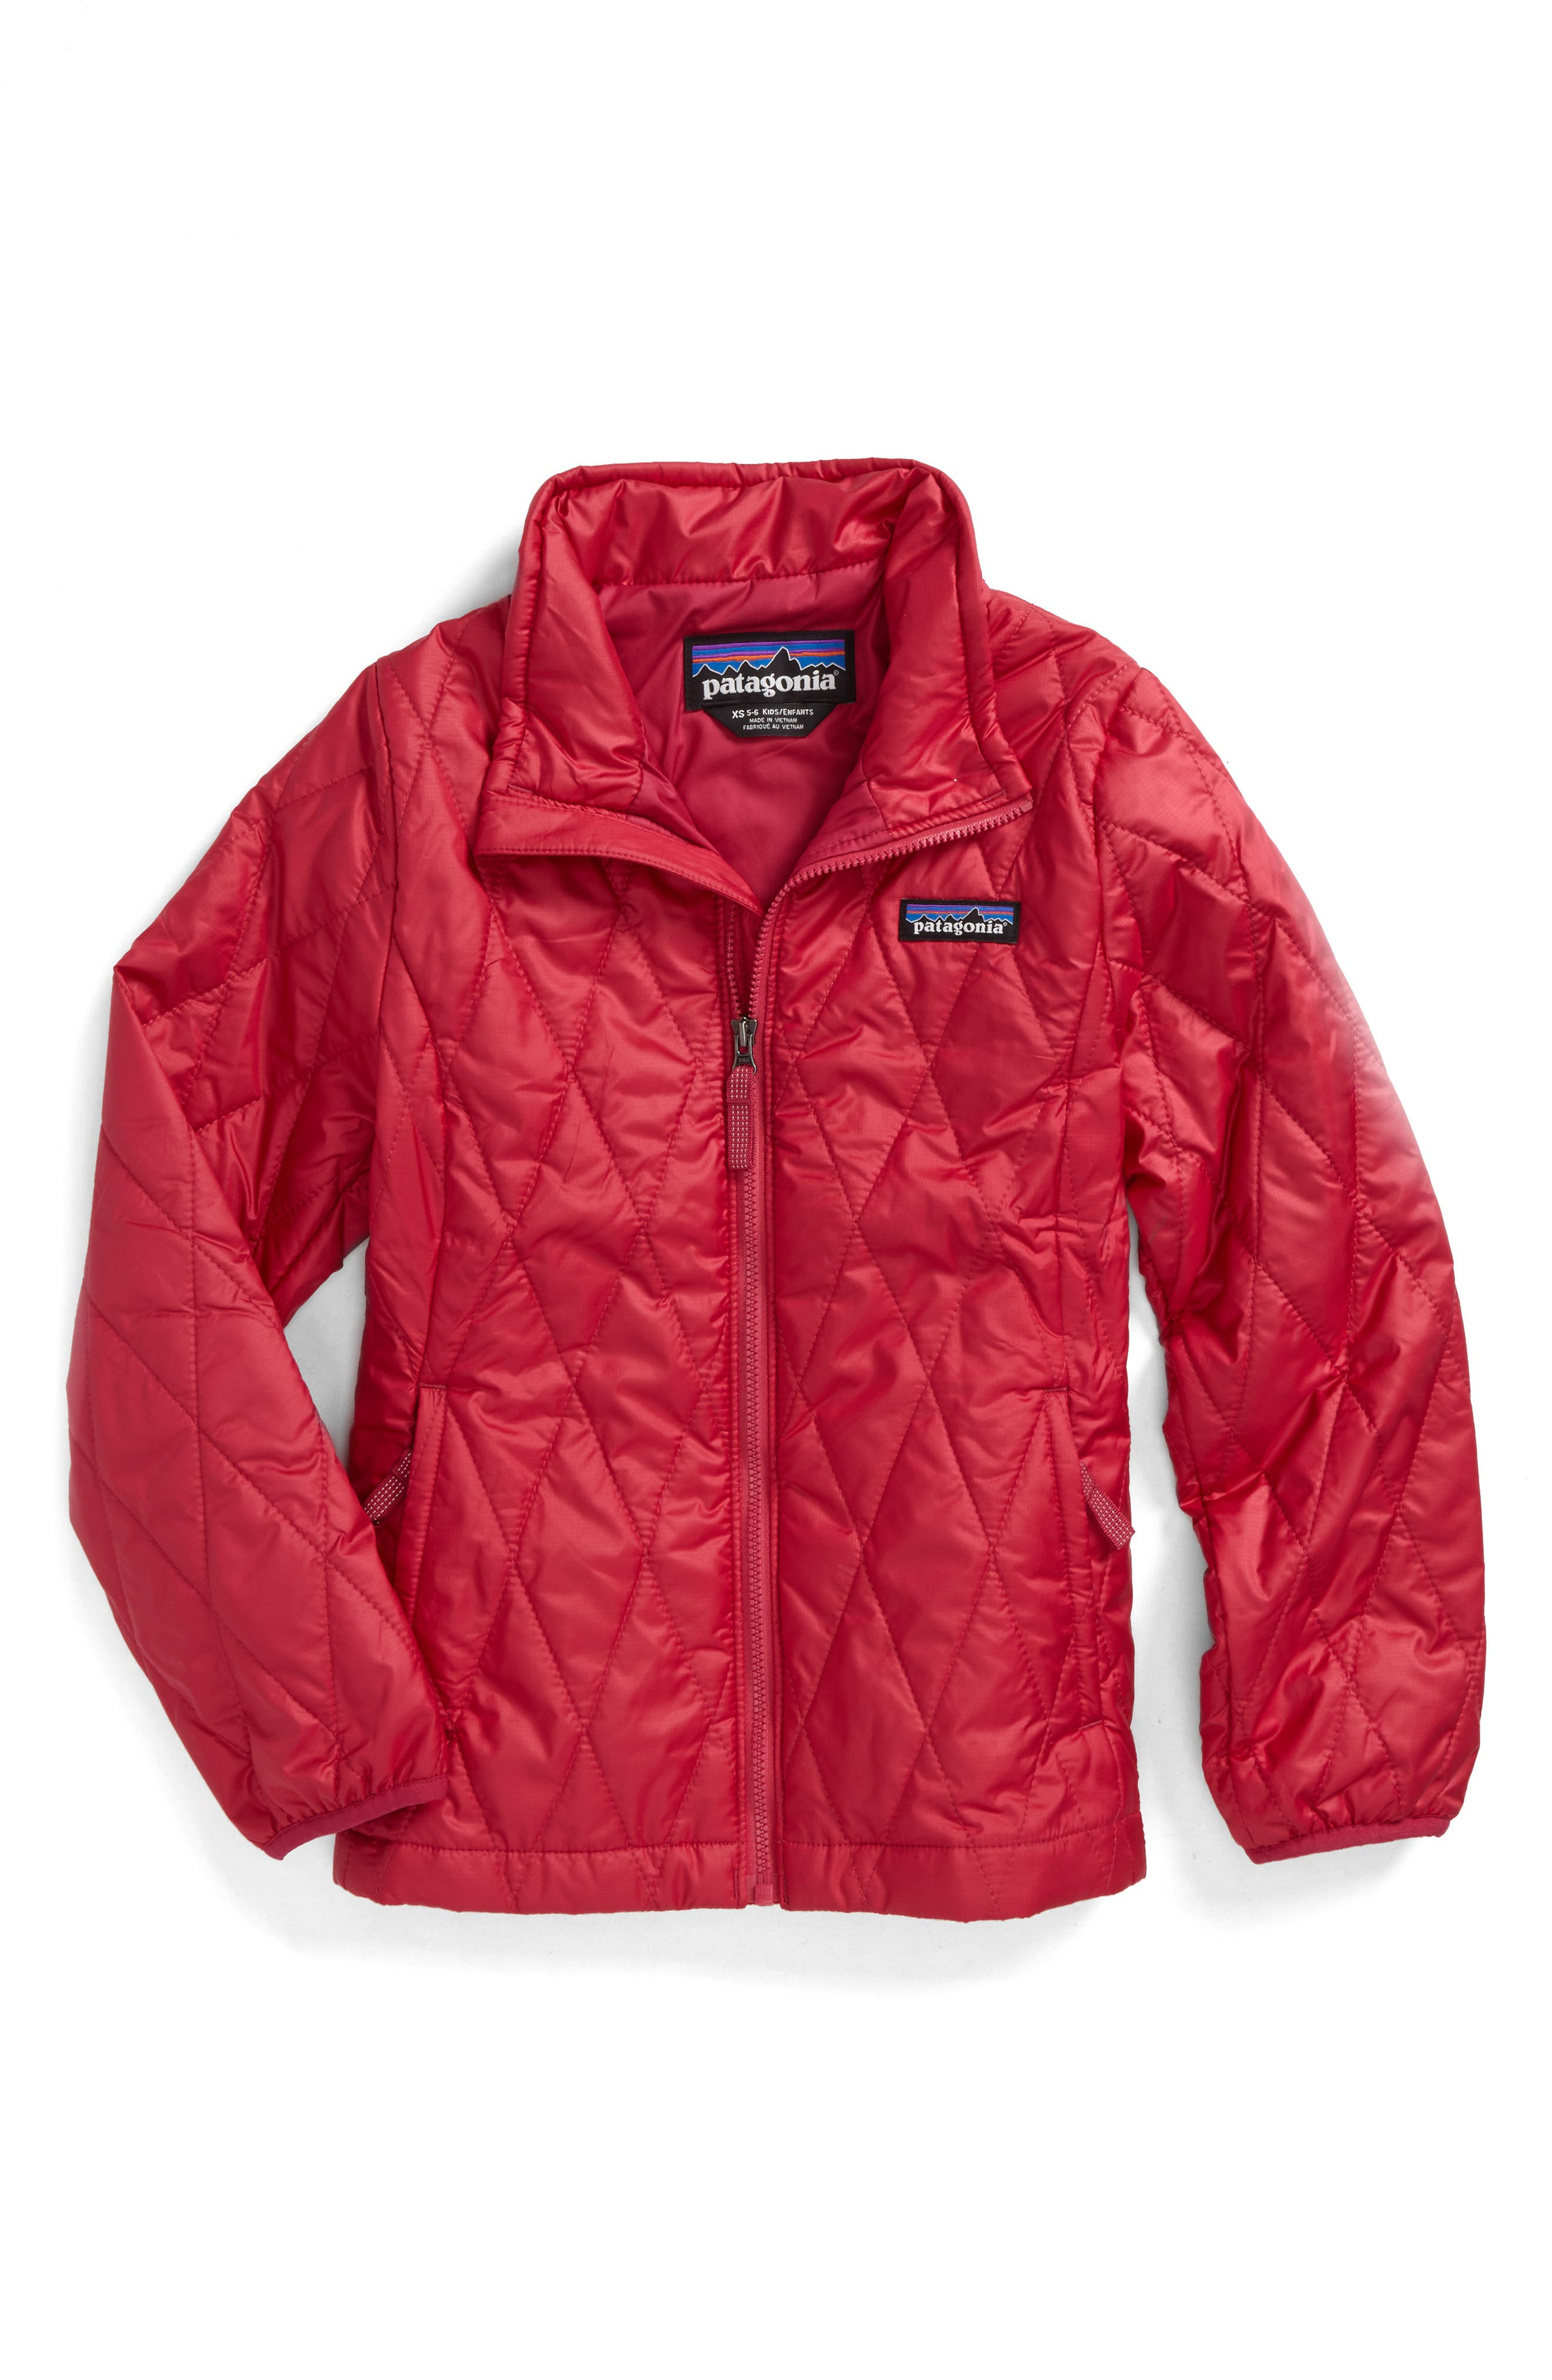 Alternate Image 1 Selected - Patagonia Nano Puff® Quilted Water Resistant Jacket (Little Girls & Big Girls)